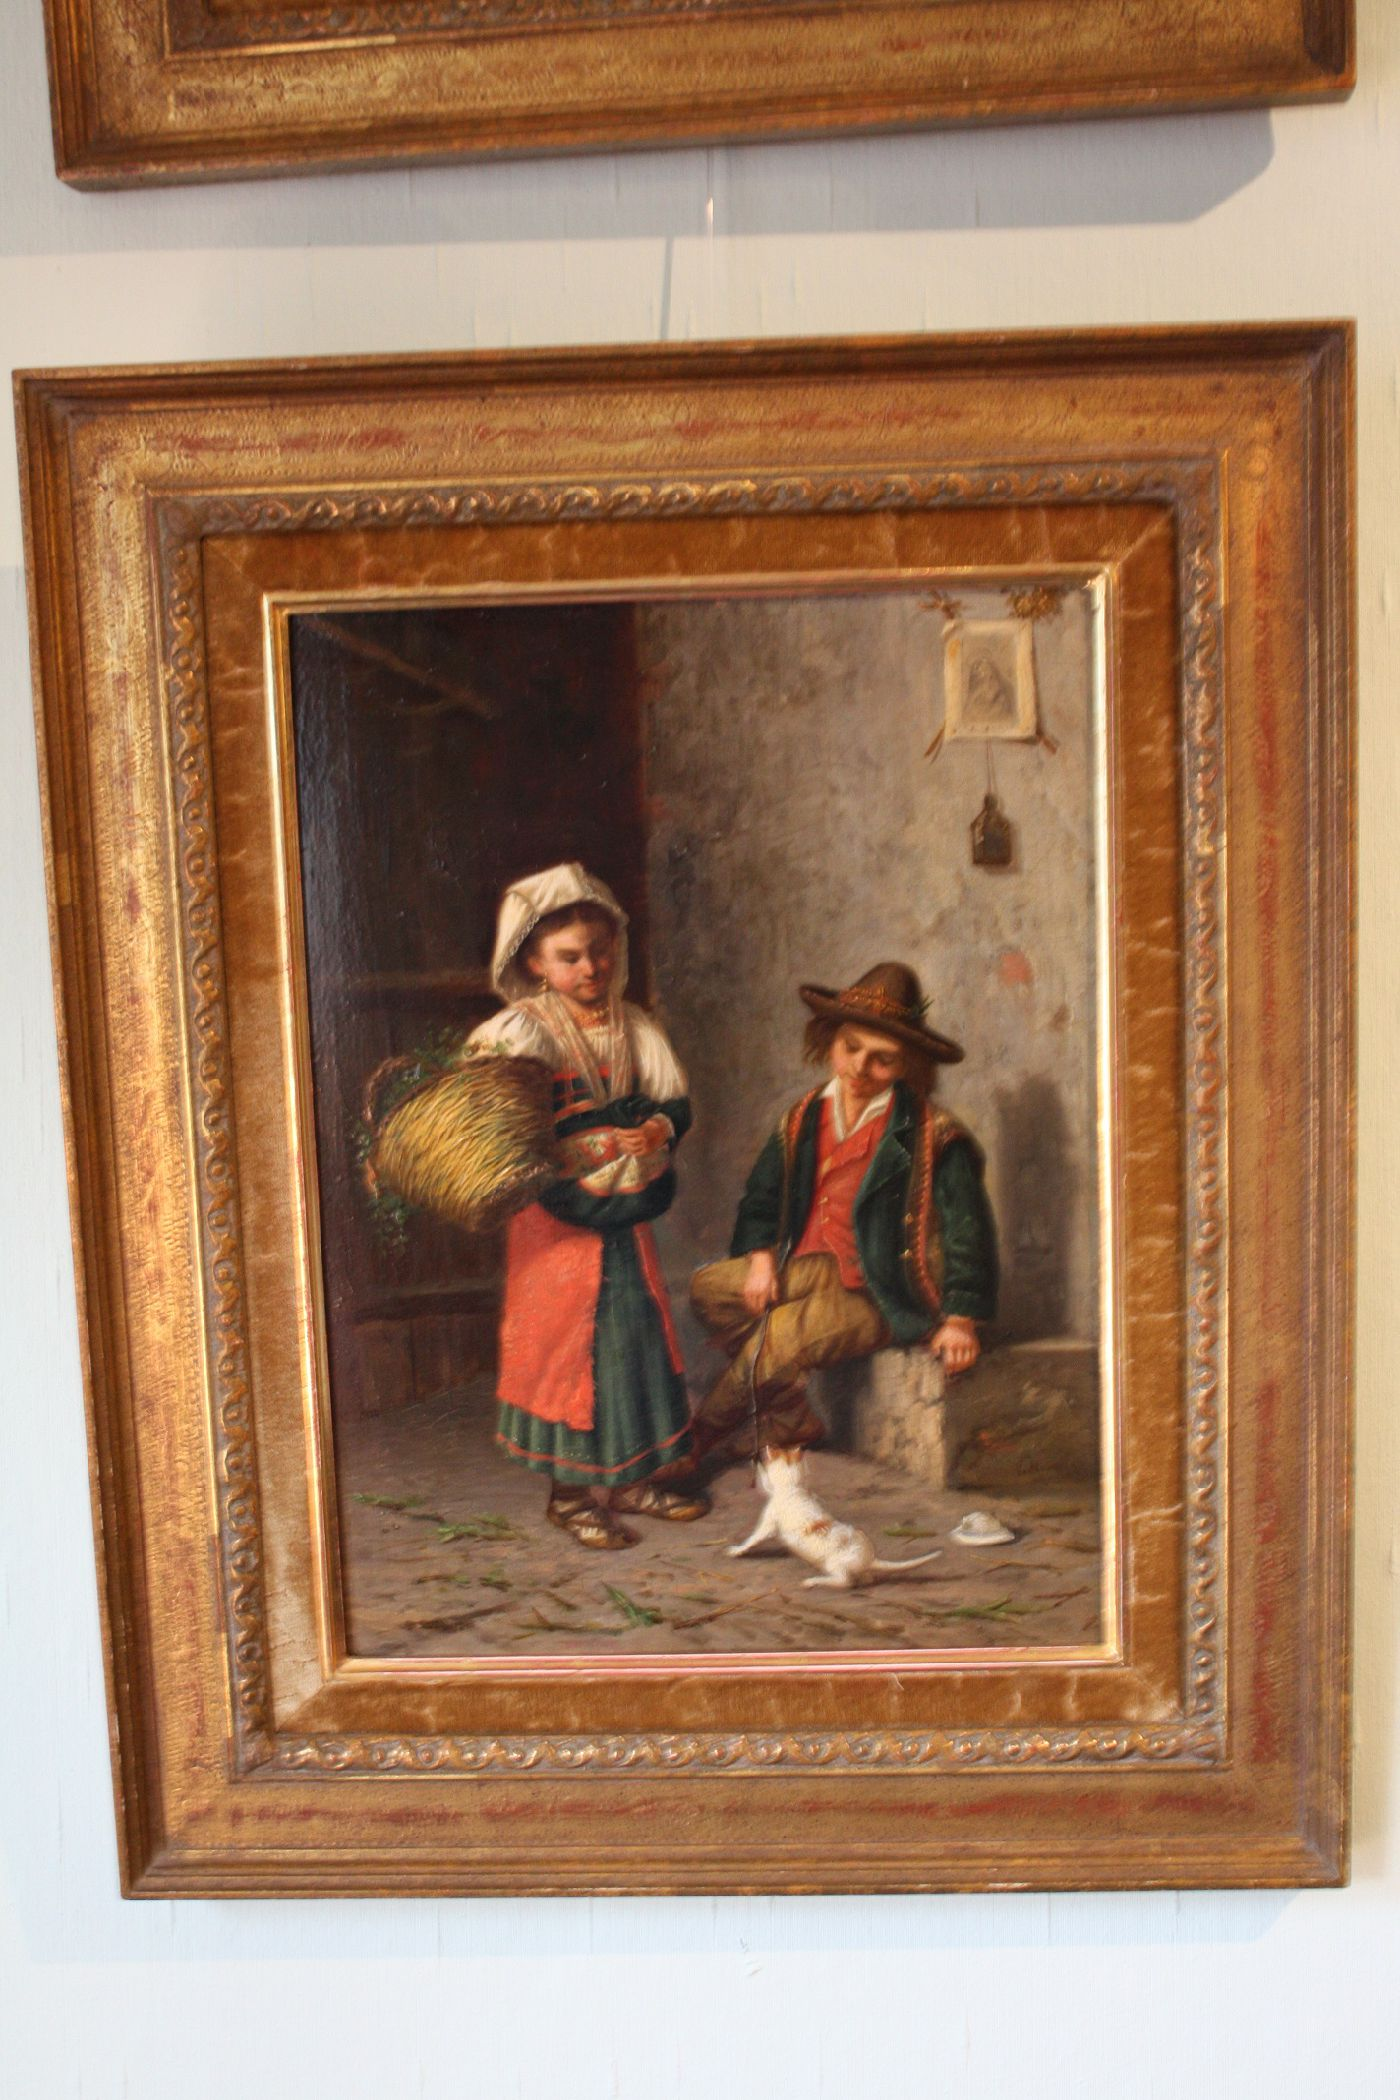 Fine Italian Mid-19th century scenery of children playing with a cat, painting oil on wood, signed 'G. Mormile',  Gaetano Mormile